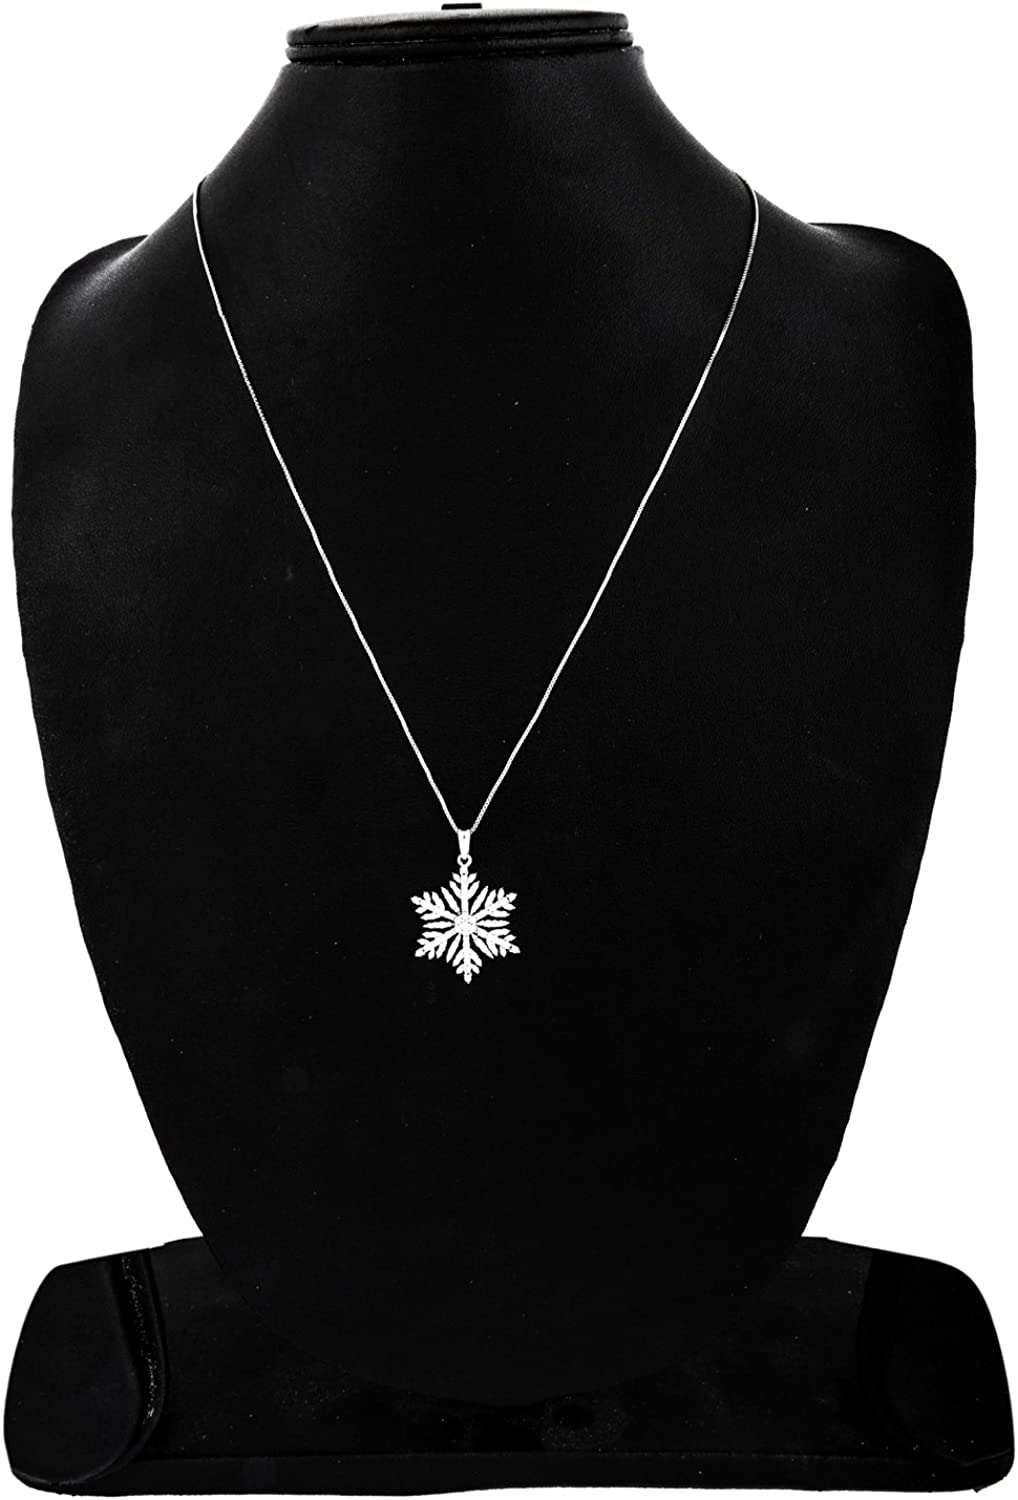 1 2CT TW Diamond Sterling Silver Snowflake Pendant along with 18 inches Chain